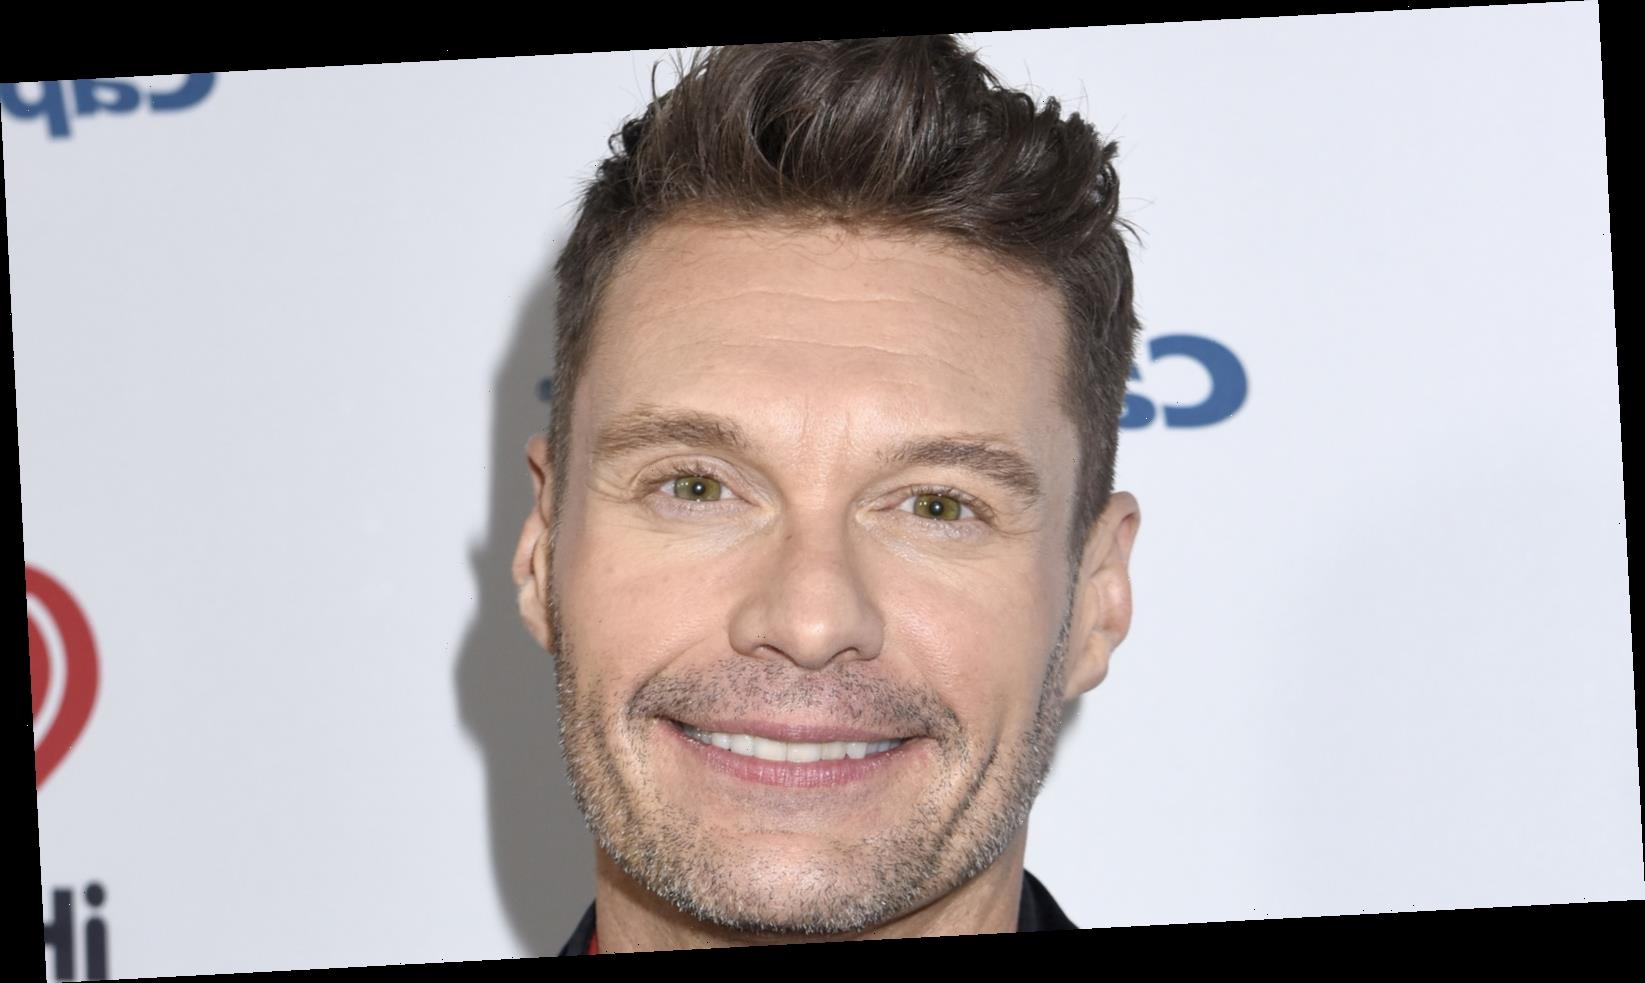 The Real Reason Ryan Seacrest Quit E! Live From The Red Carpet